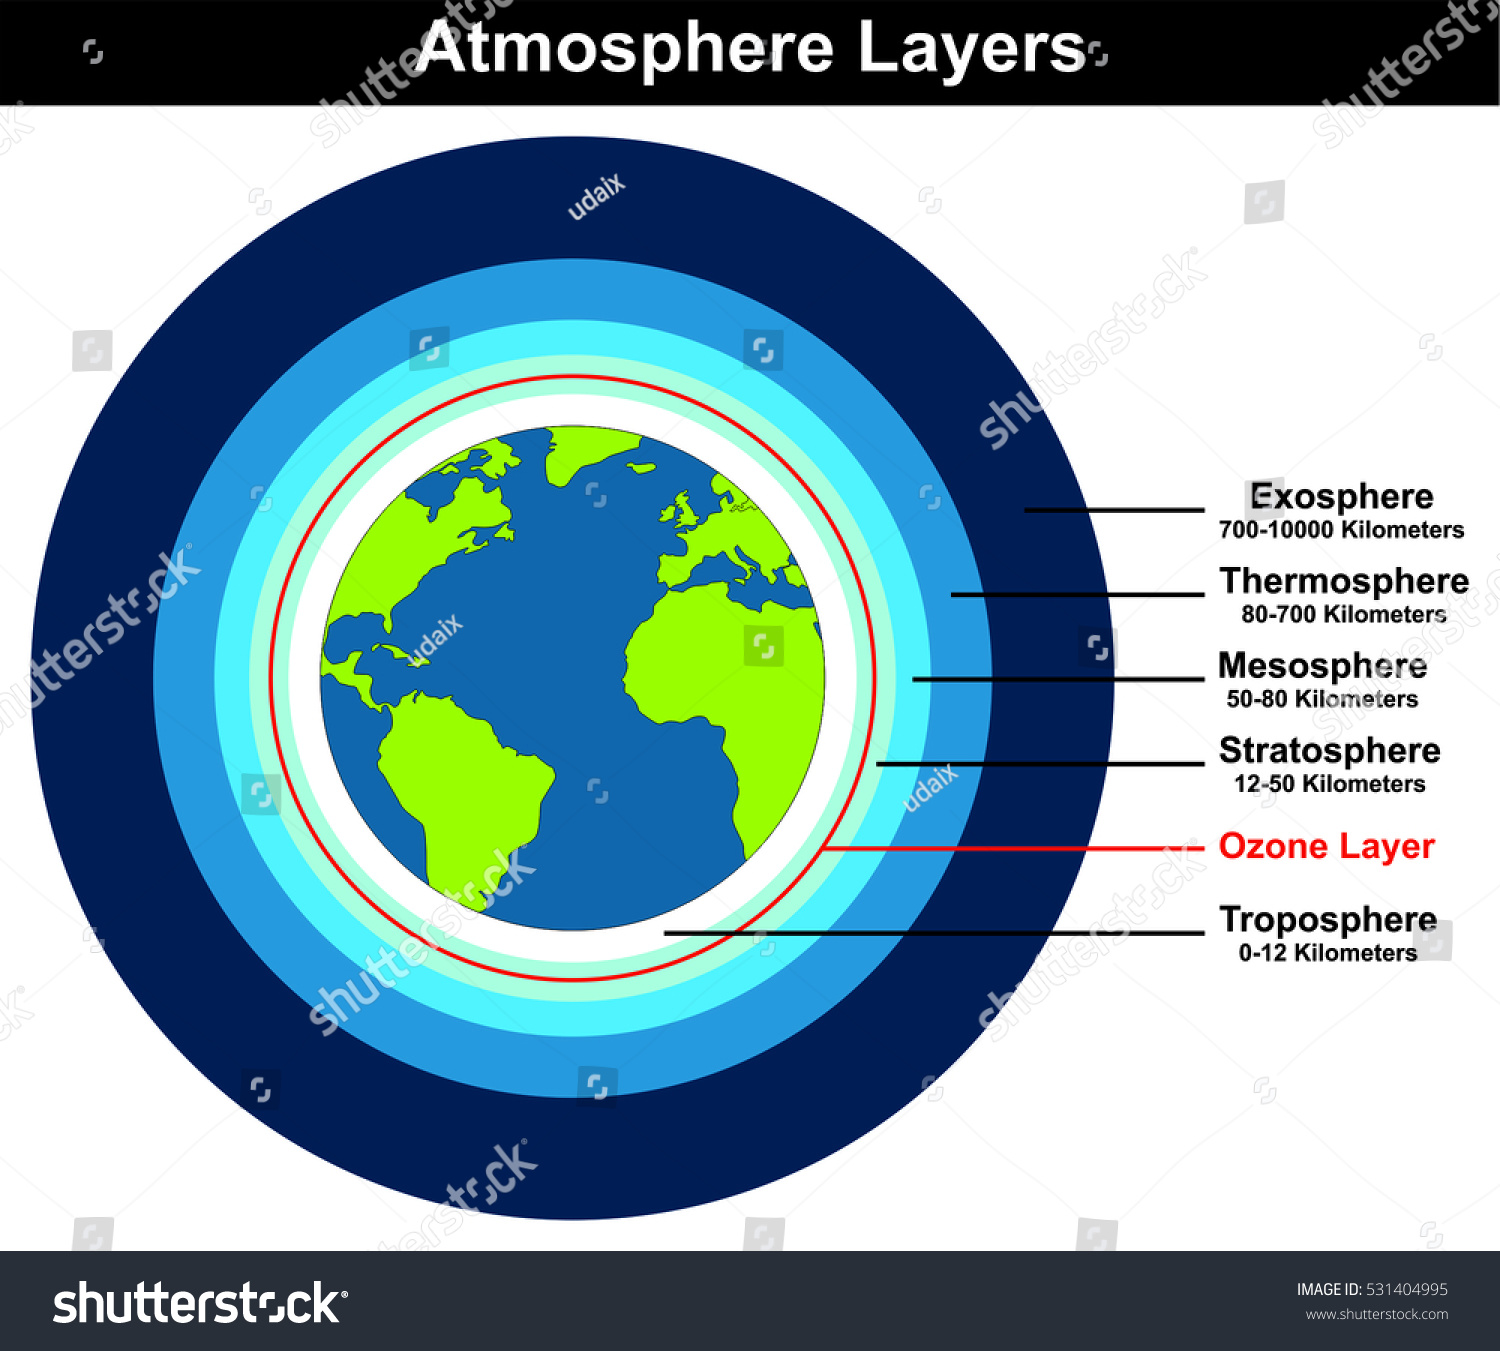 structure of the earth diagram 2005 kia spectra5 radio wiring vector atmosphere layers globe stock